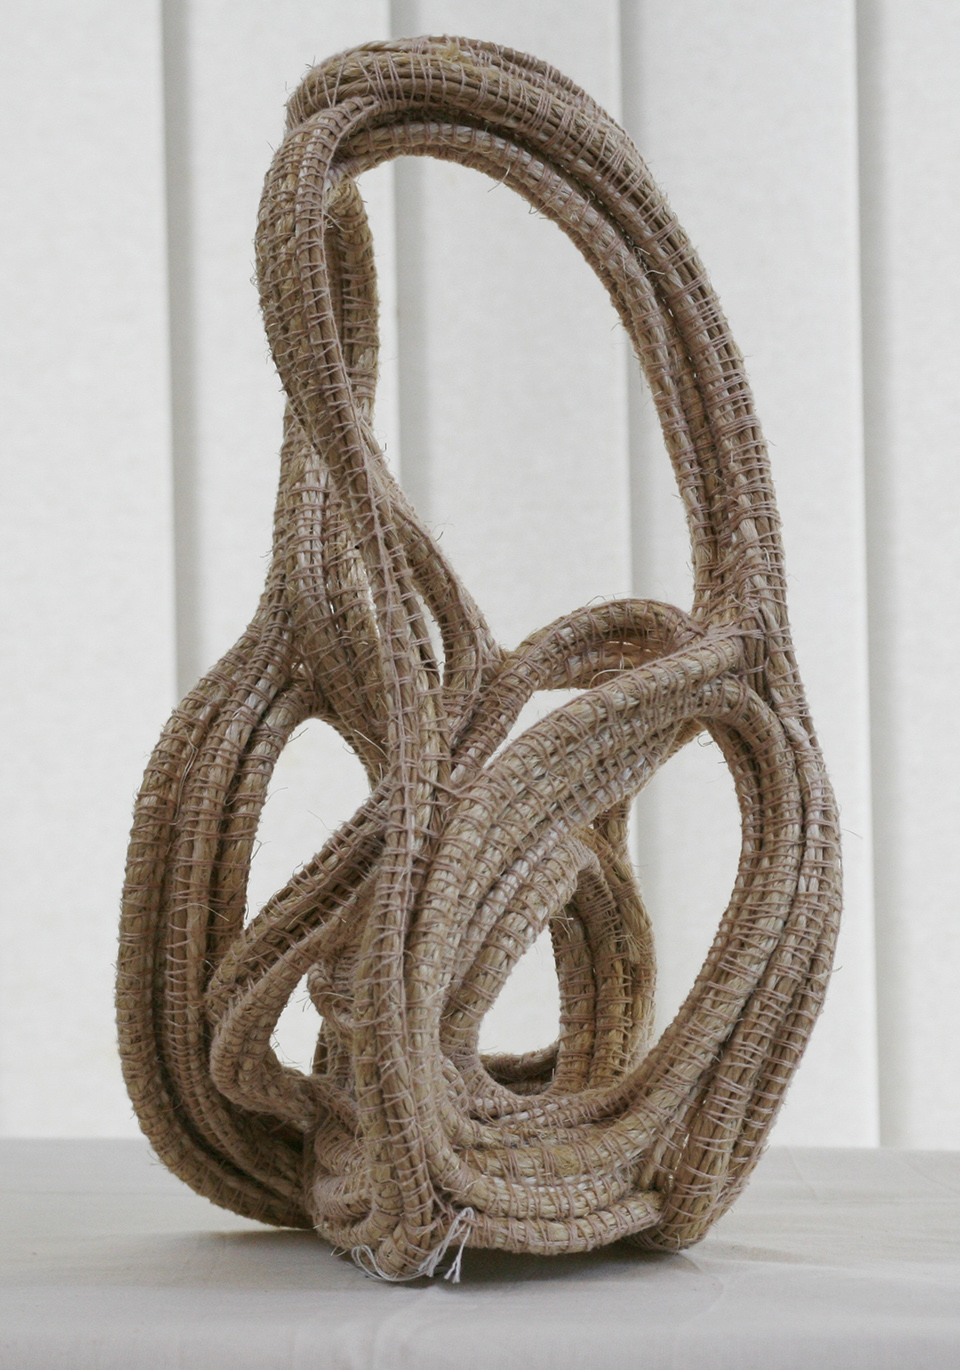 Judy Tadmans Rope Sculptures.